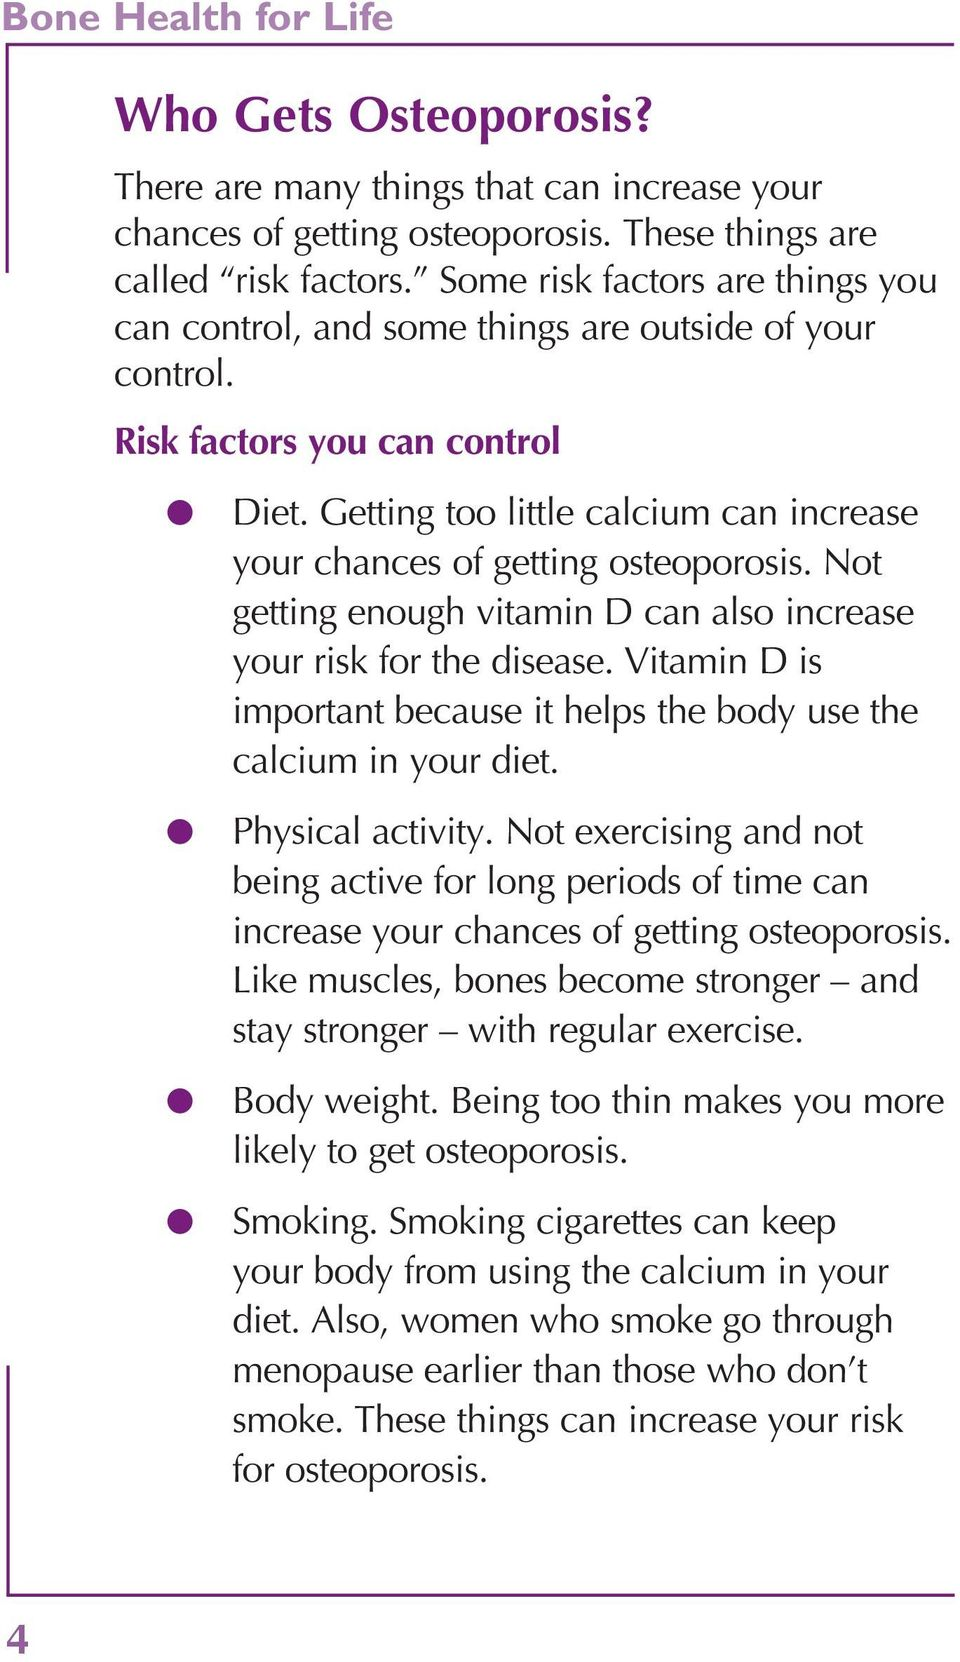 Getting too little calcium can increase your chances of getting osteoporosis. Not getting enough vitamin D can also increase your risk for the disease.